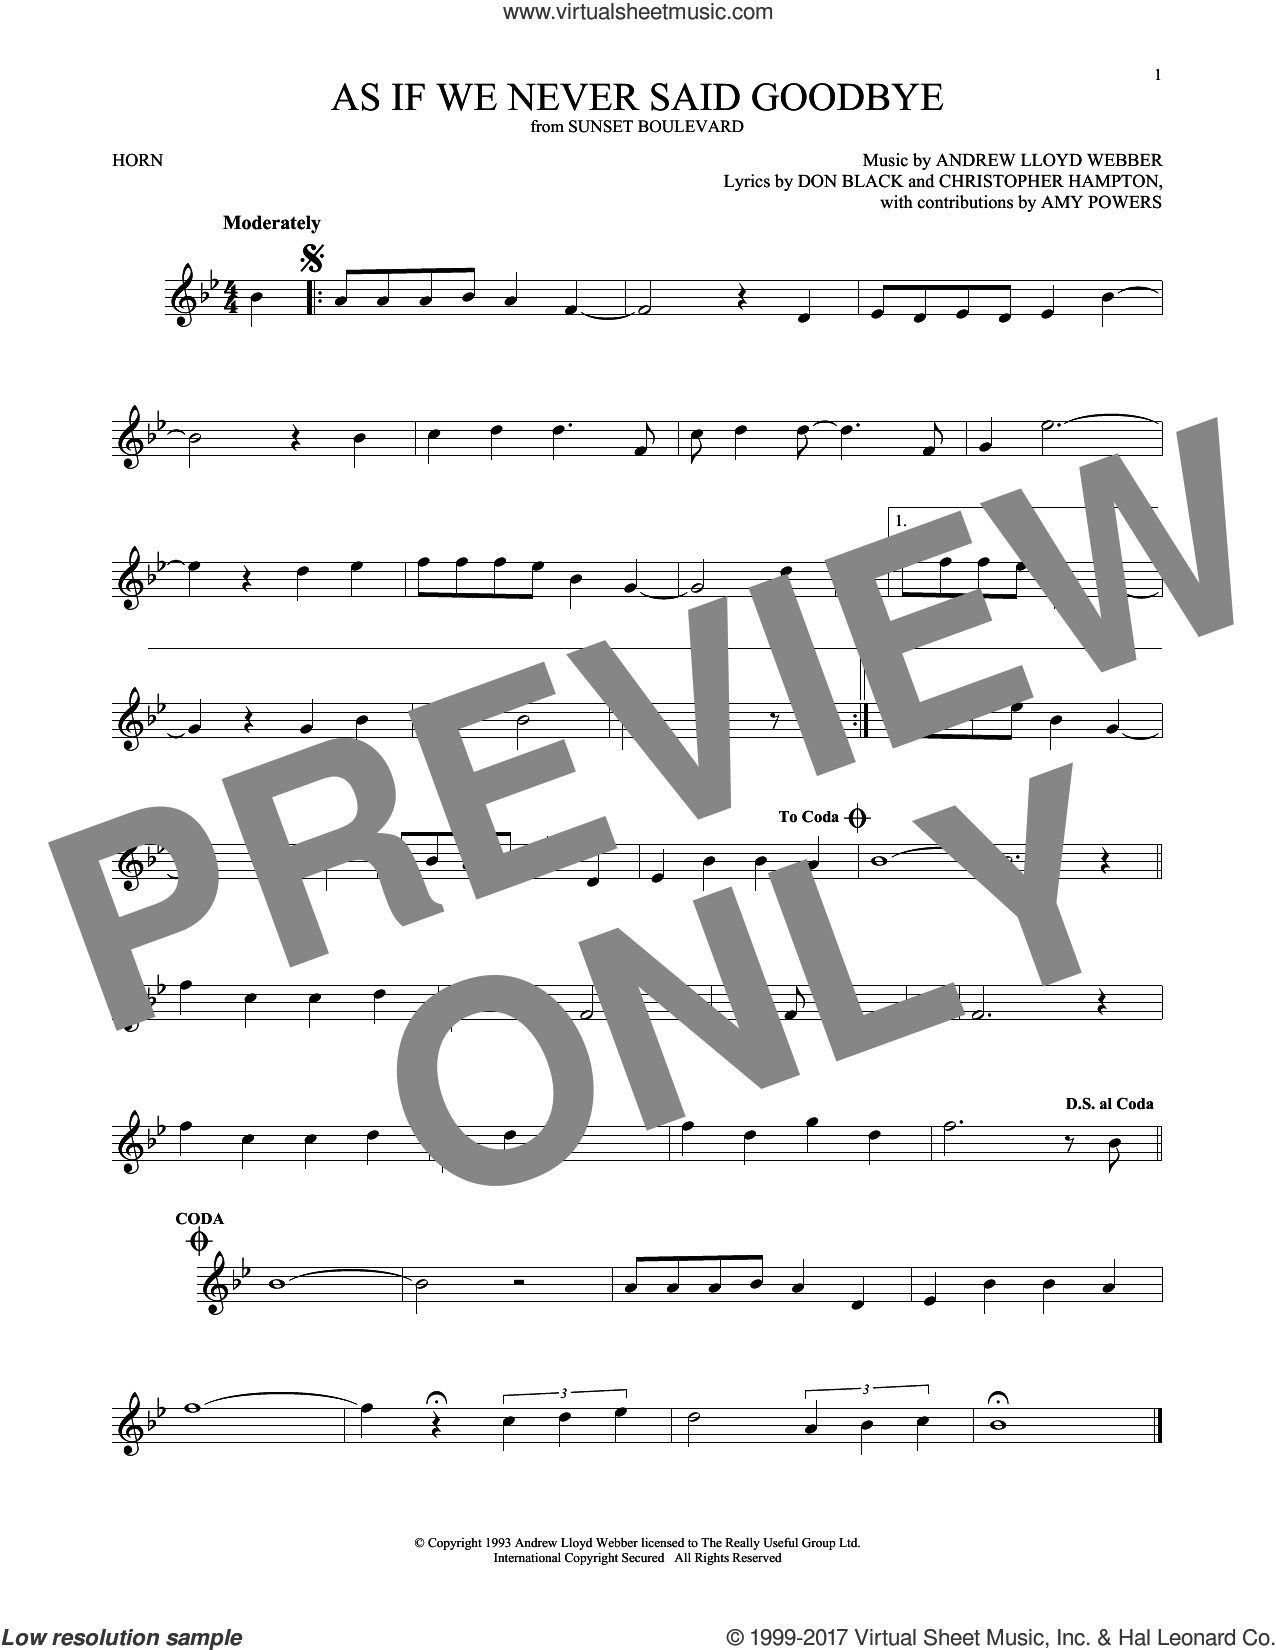 As If We Never Said Goodbye (from Sunset Boulevard) sheet music for horn solo by Andrew Lloyd Webber, Christopher Hampton and Don Black, intermediate skill level